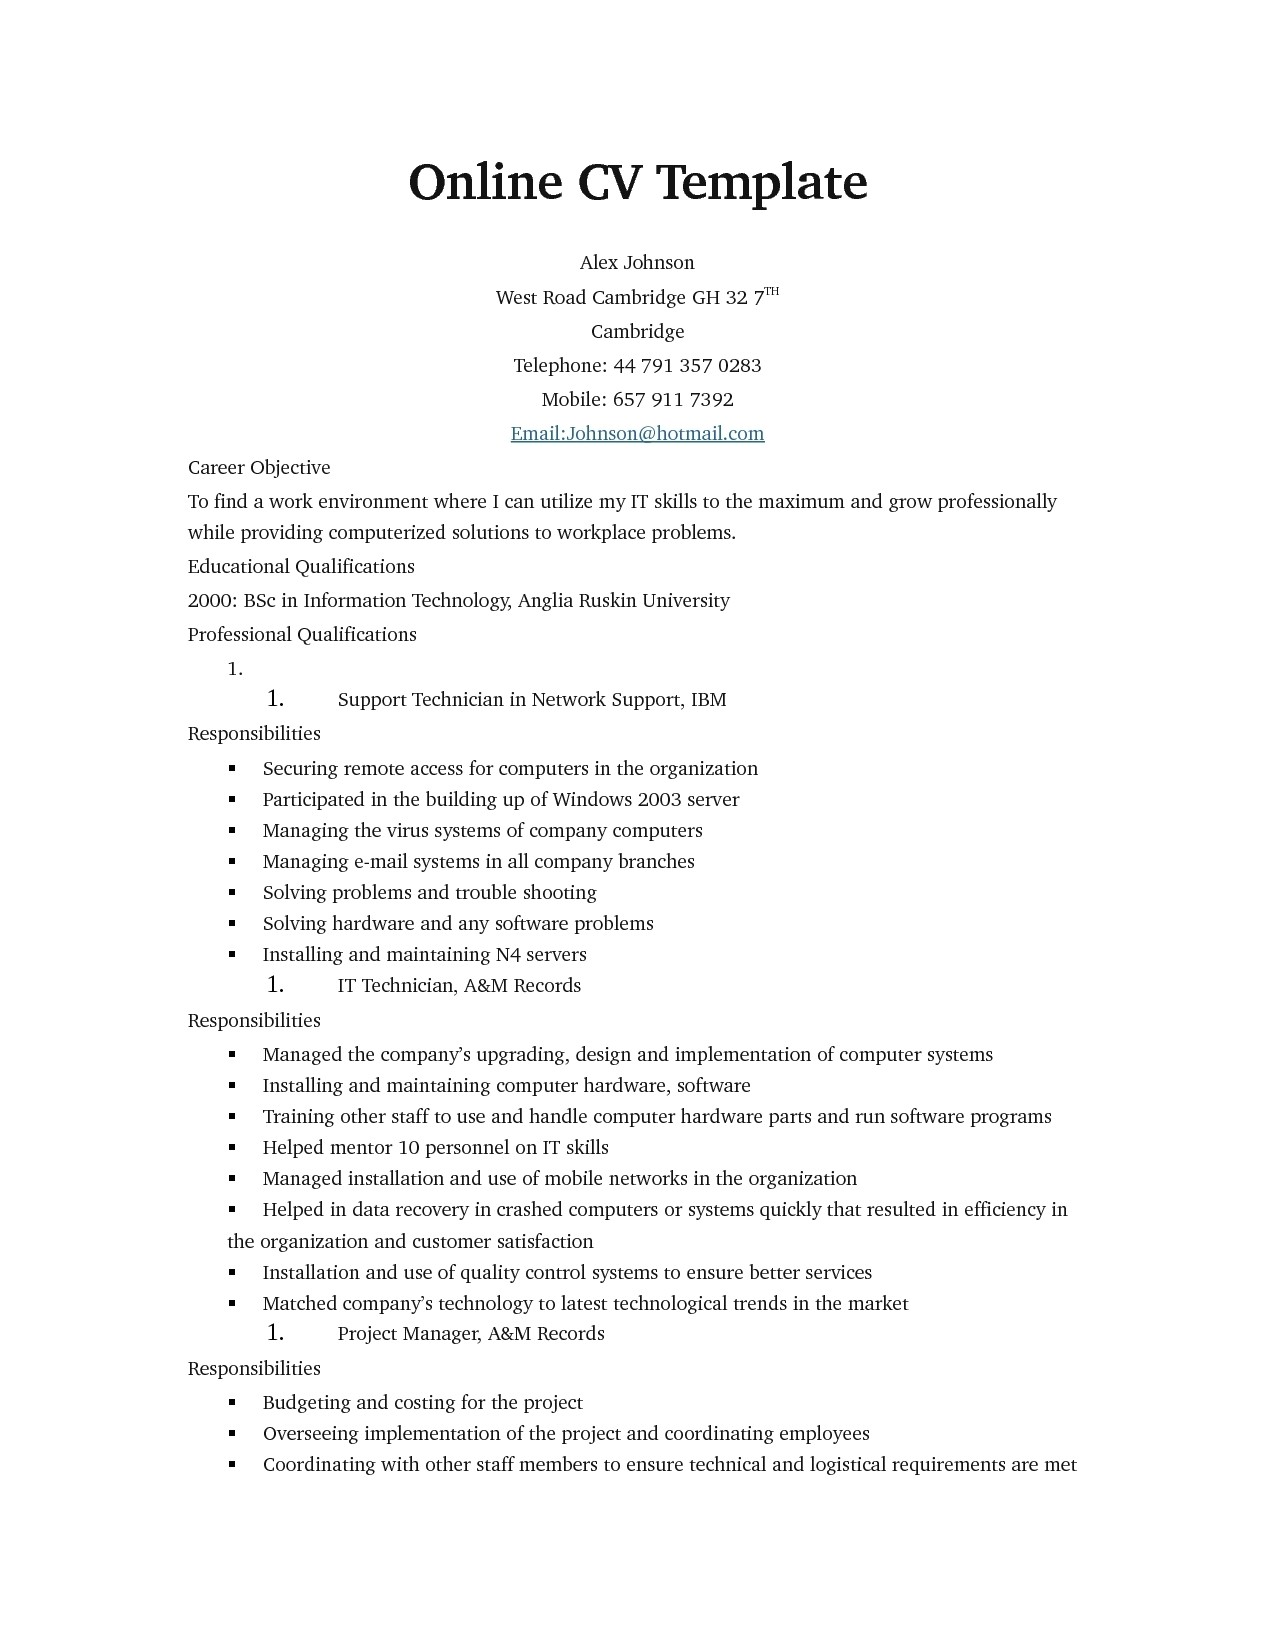 Resume Template Examples Free Online Resume Templates Health Symptoms and Cure Com